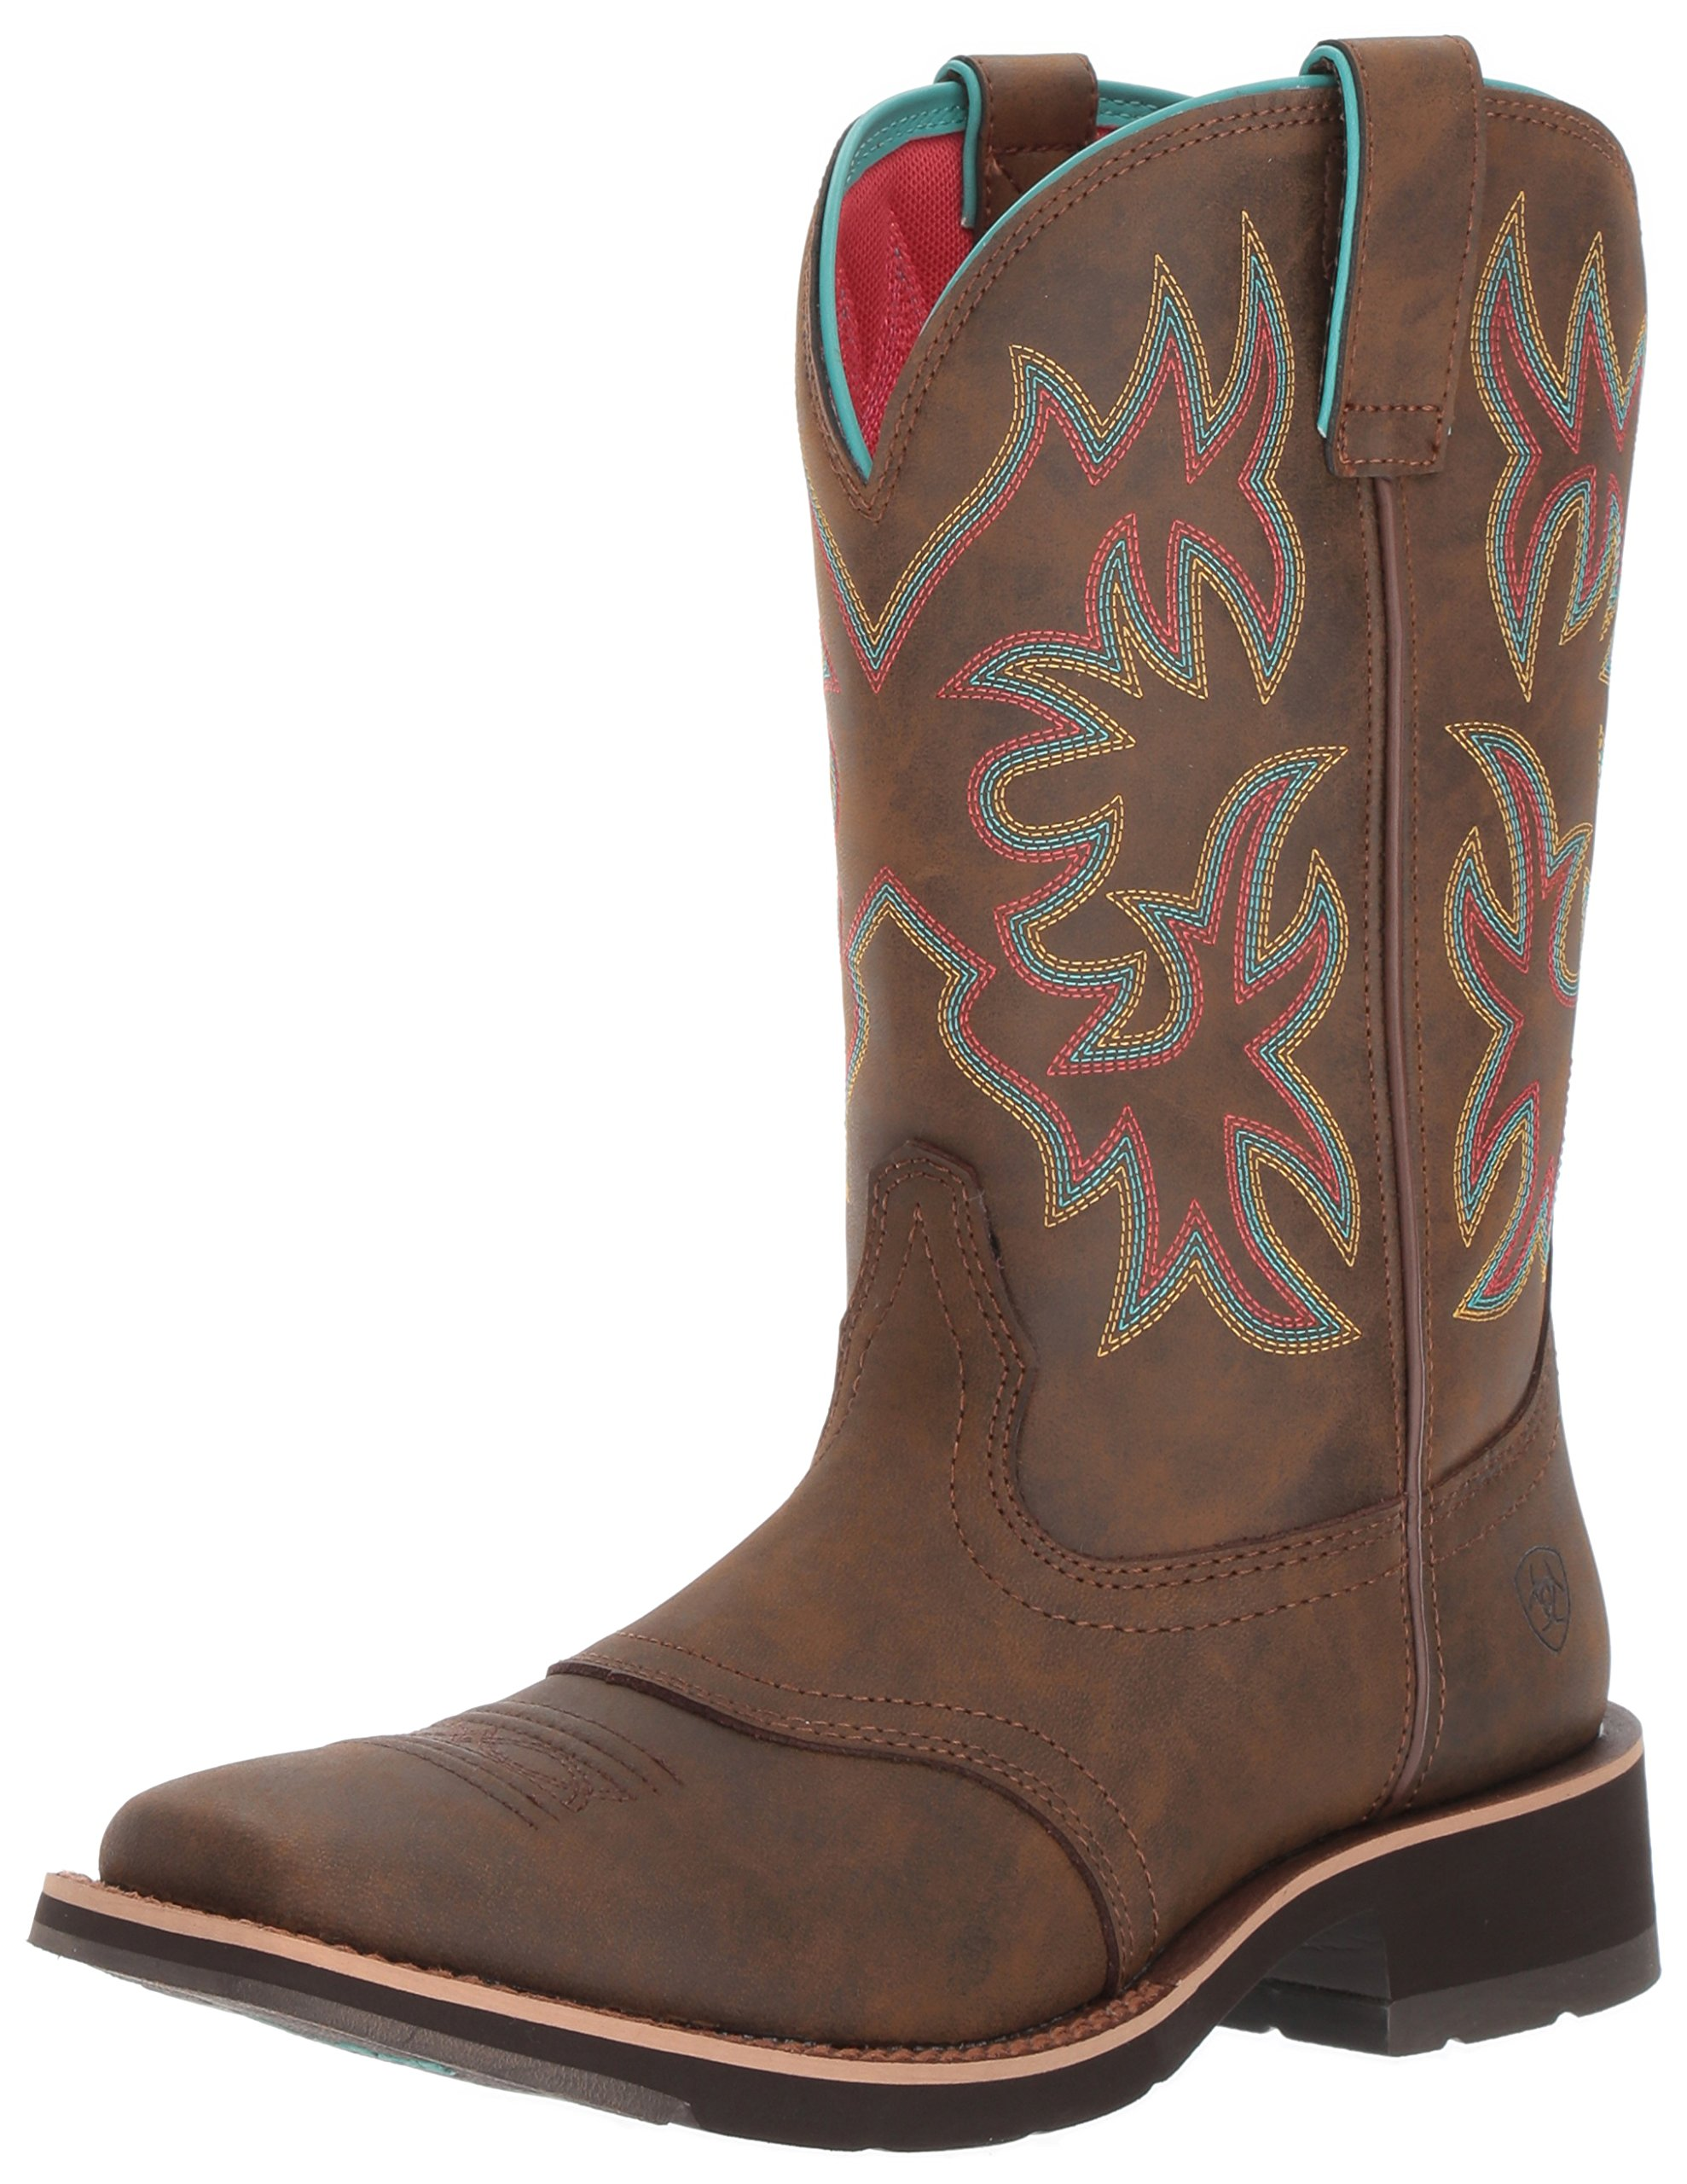 Ariat Women's Delilah Work Boot, Toasted Brown, 6.5 B US